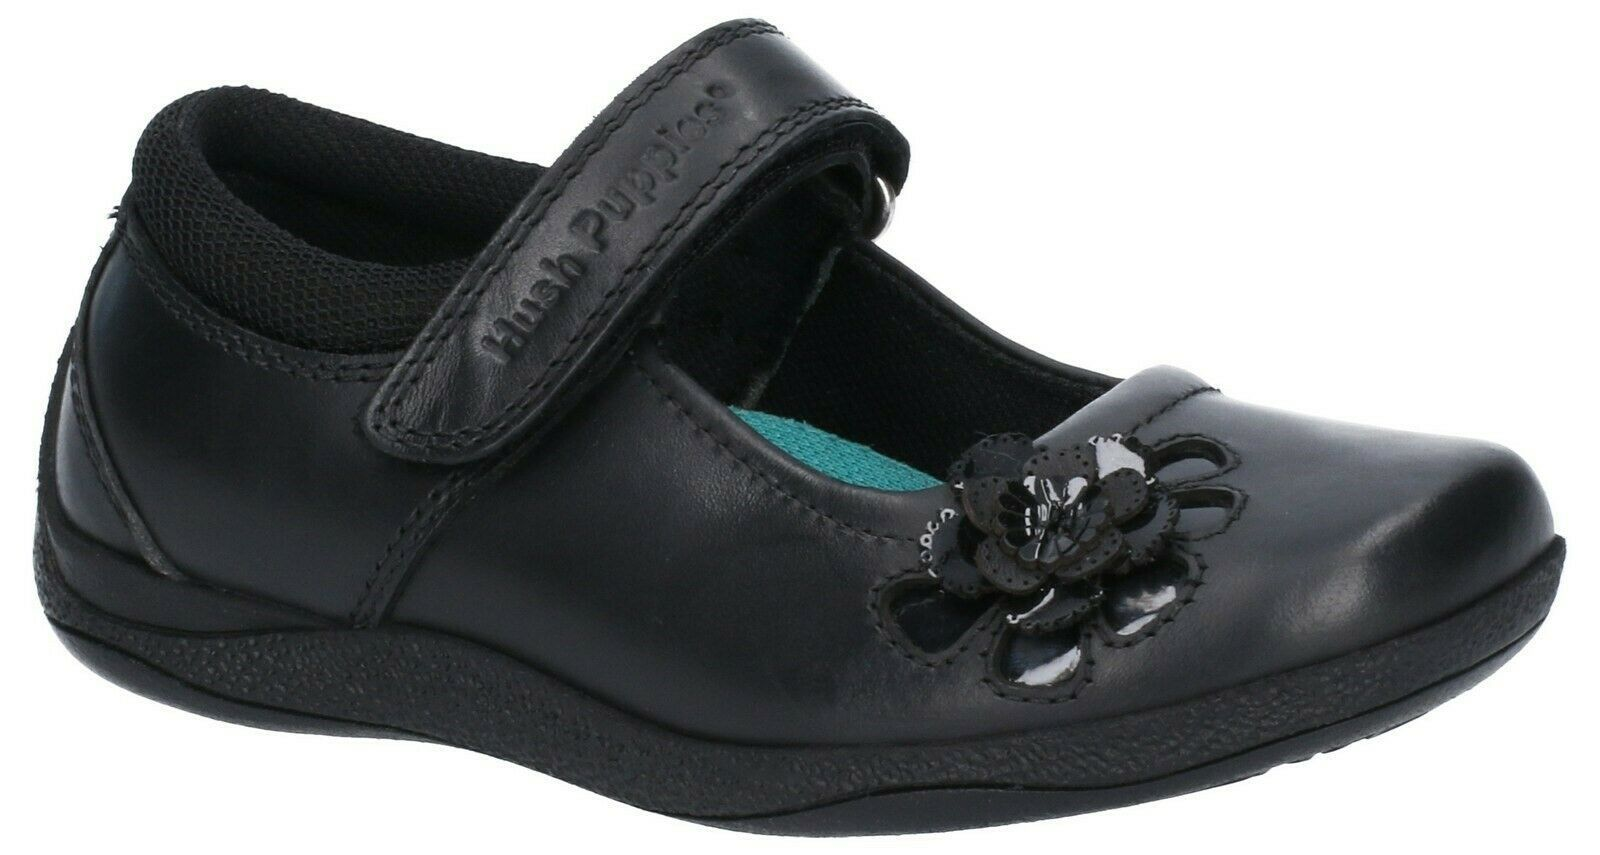 Hush Puppies Mujer Jessica Snr Toque Cierre Calzado Escolar Calzado Mujer Ideas Of Calzado Mujer Calzadomujer In 2020 Oxford Shoes Womens Oxfords Zapatos